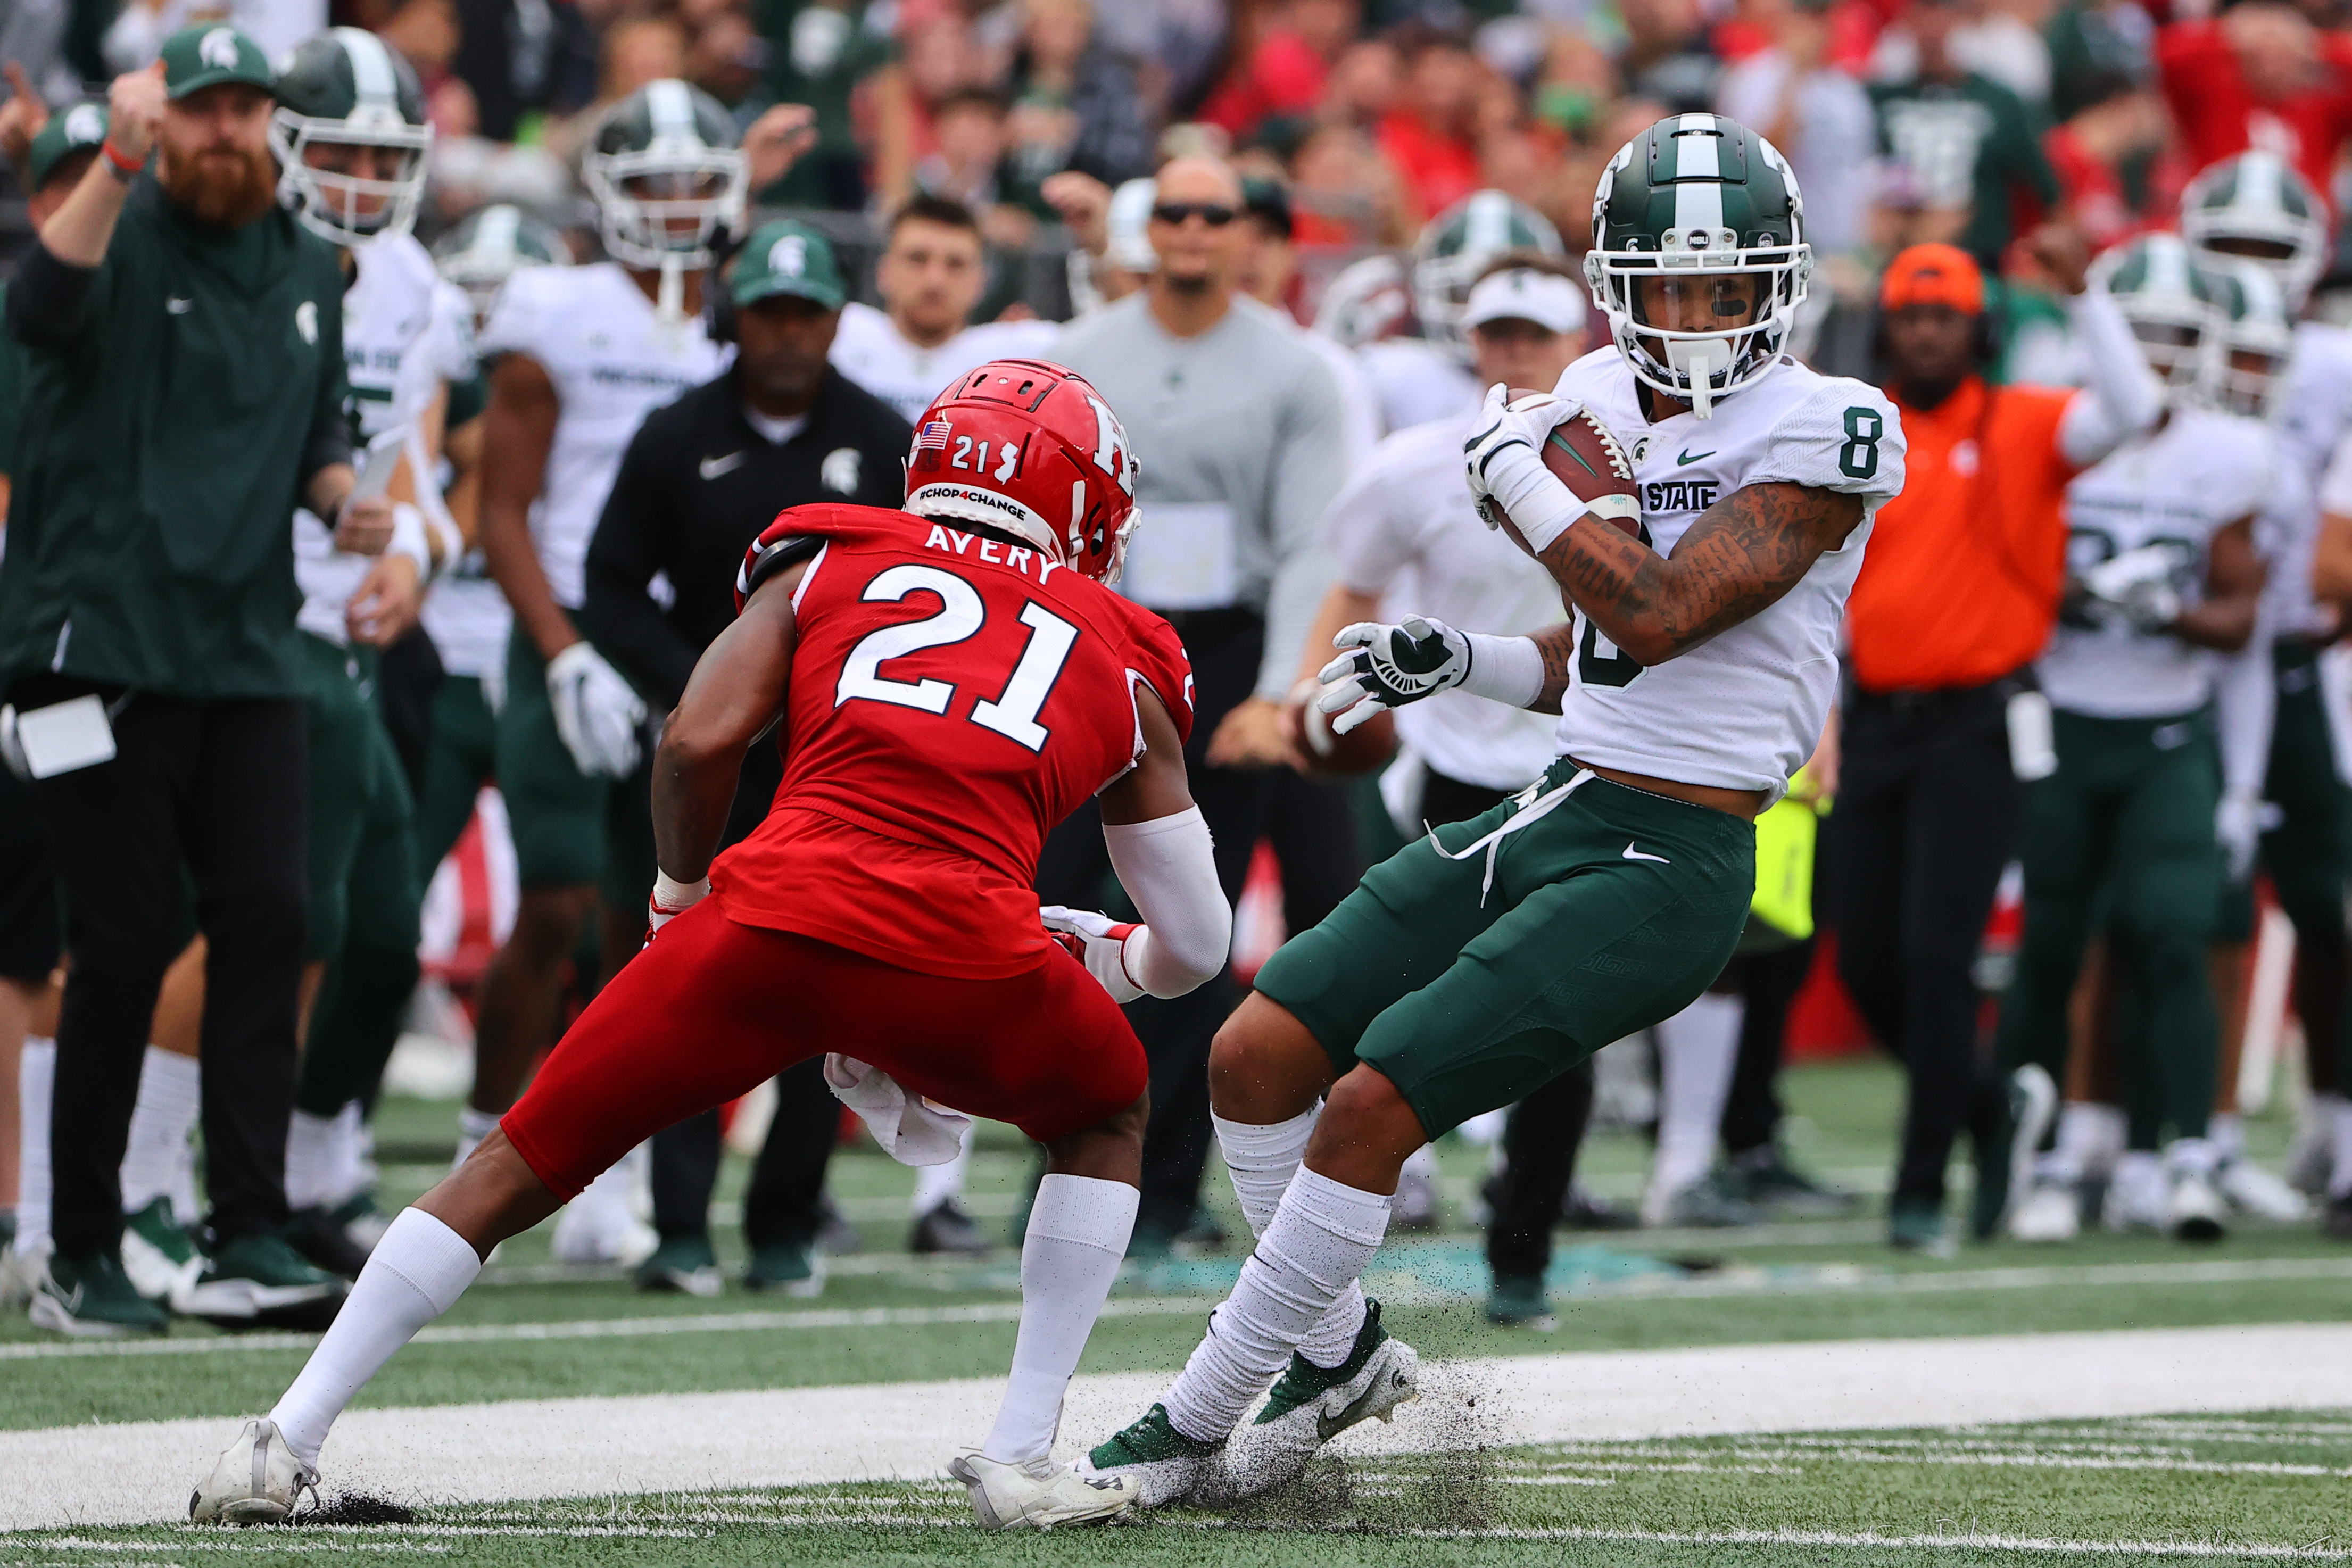 COLLEGE FOOTBALL: OCT 09 Michigan State at Rutgers